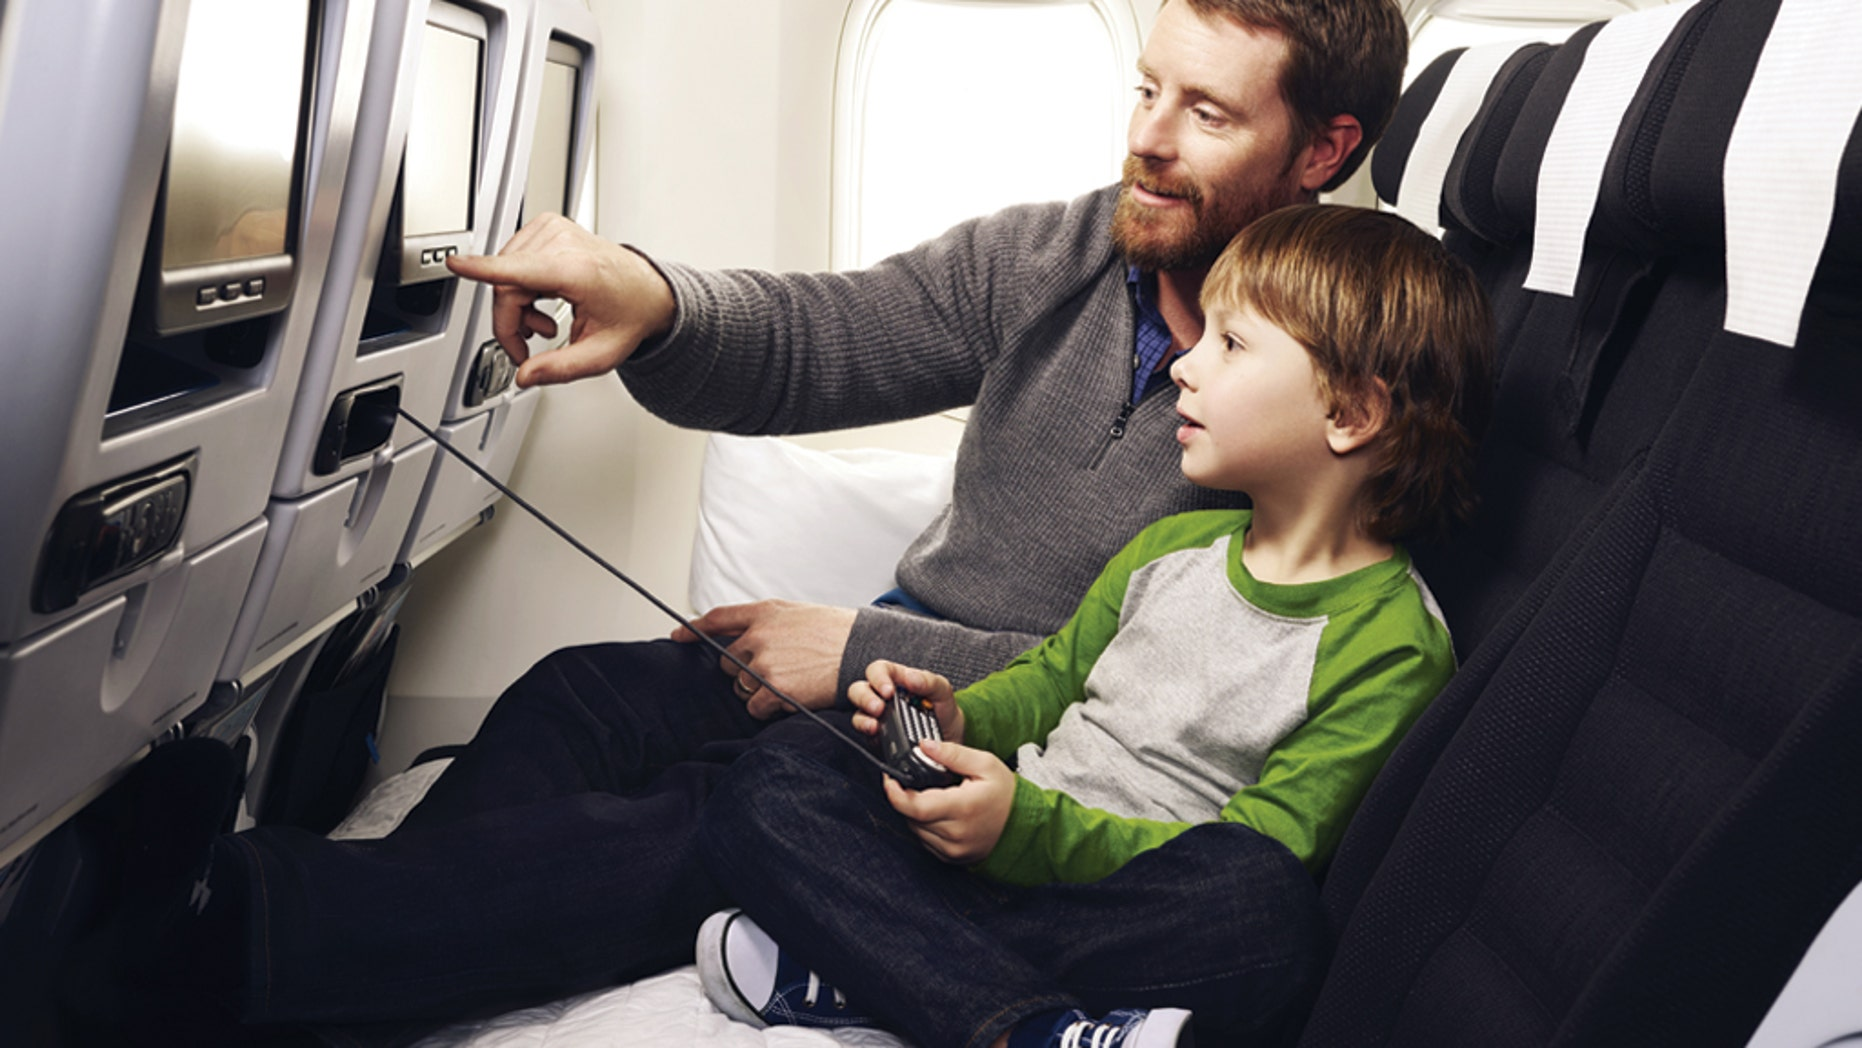 Families can cuddle up on Air New Zealand's Economy Skycouch seating.